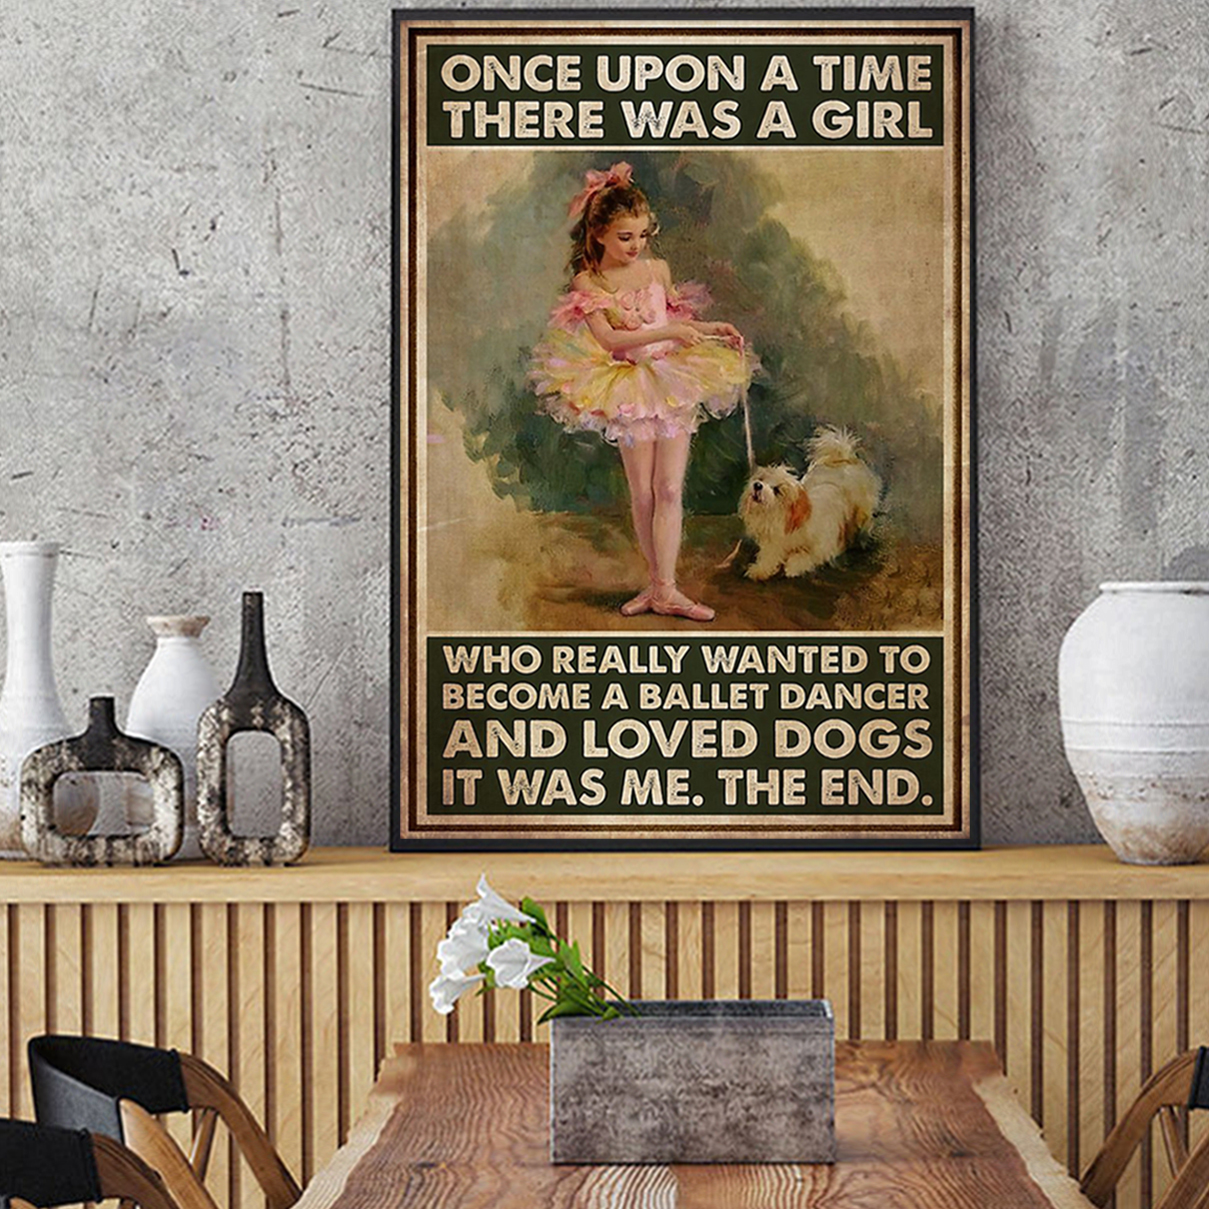 Once upon a time there was a girl who really wanted to become a ballet dancer and loved dogs poster A3